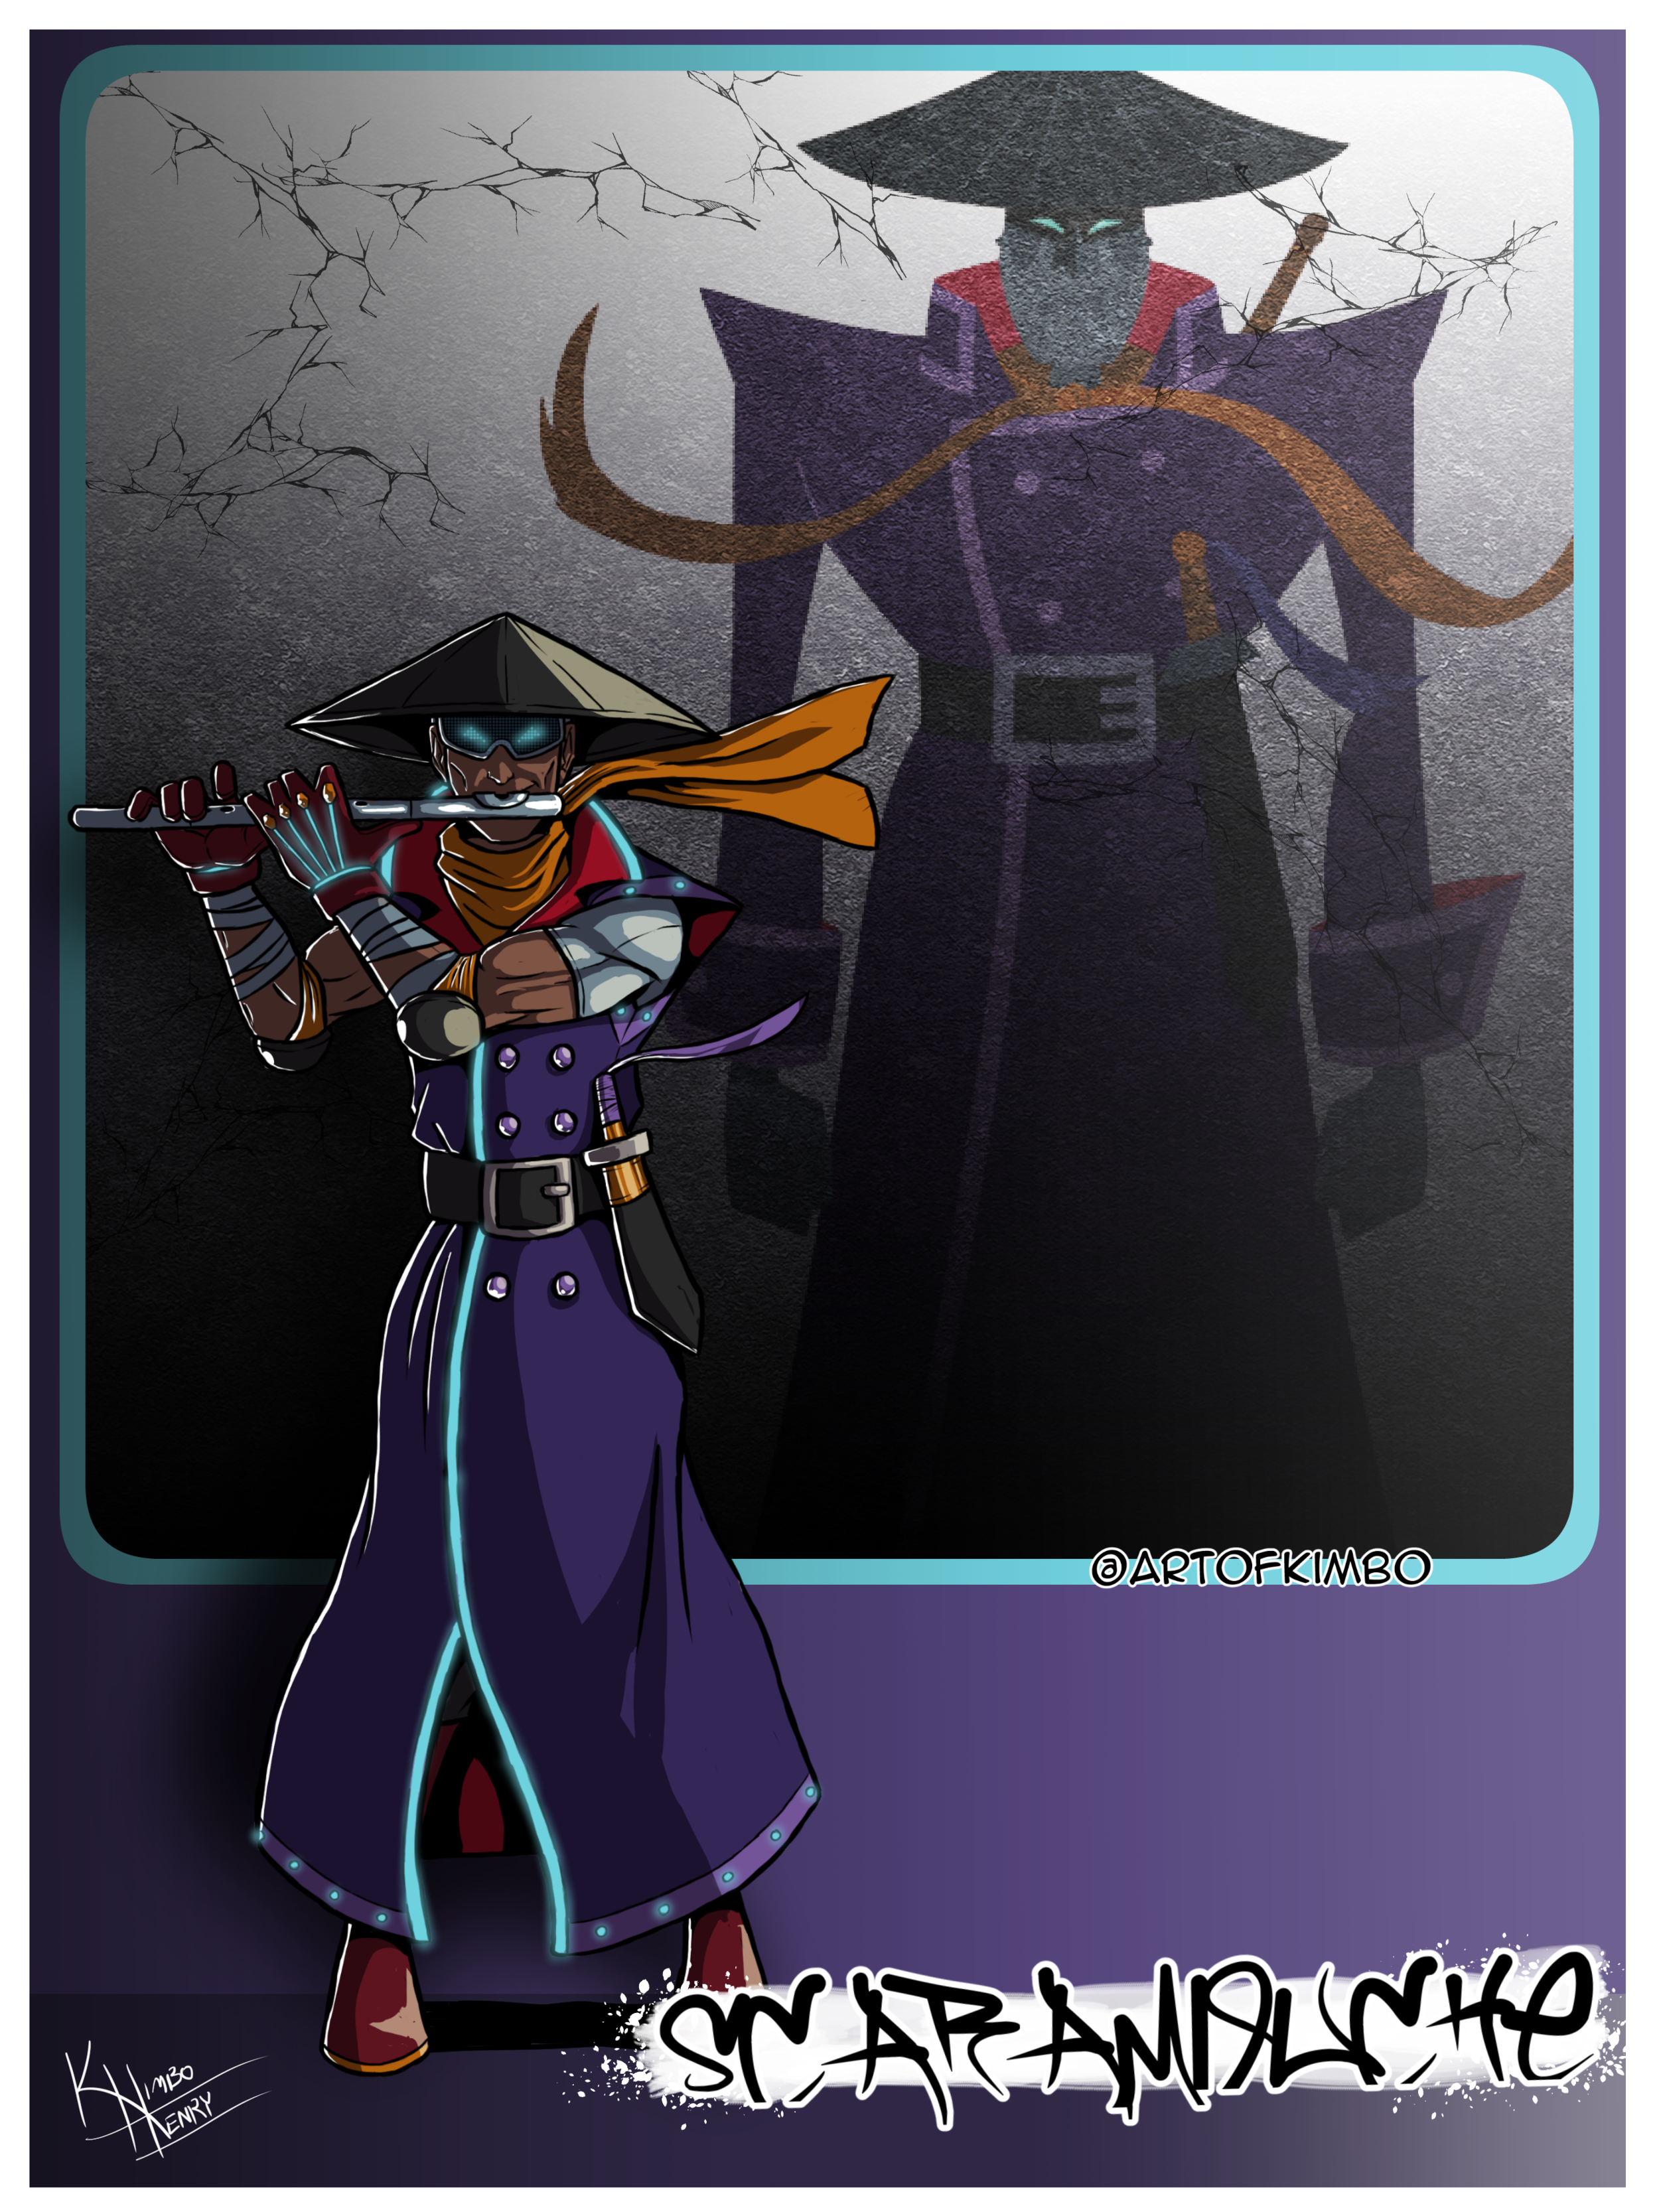 Scaramouche (2018).png